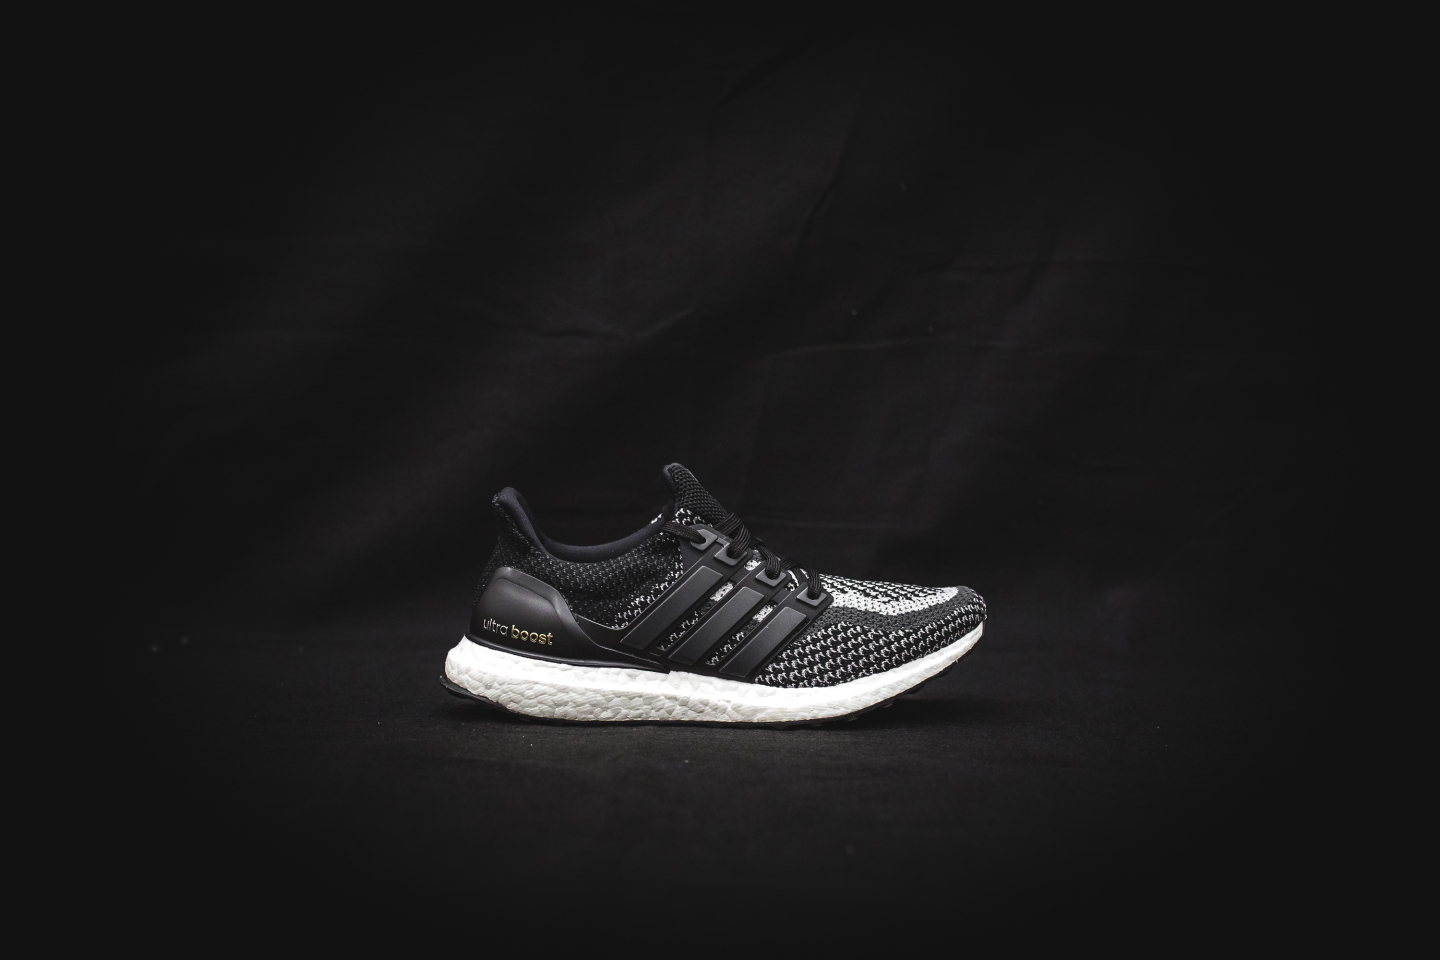 ab4db039a adidas-ultra-boost-reflective-release-3 - WearTesters